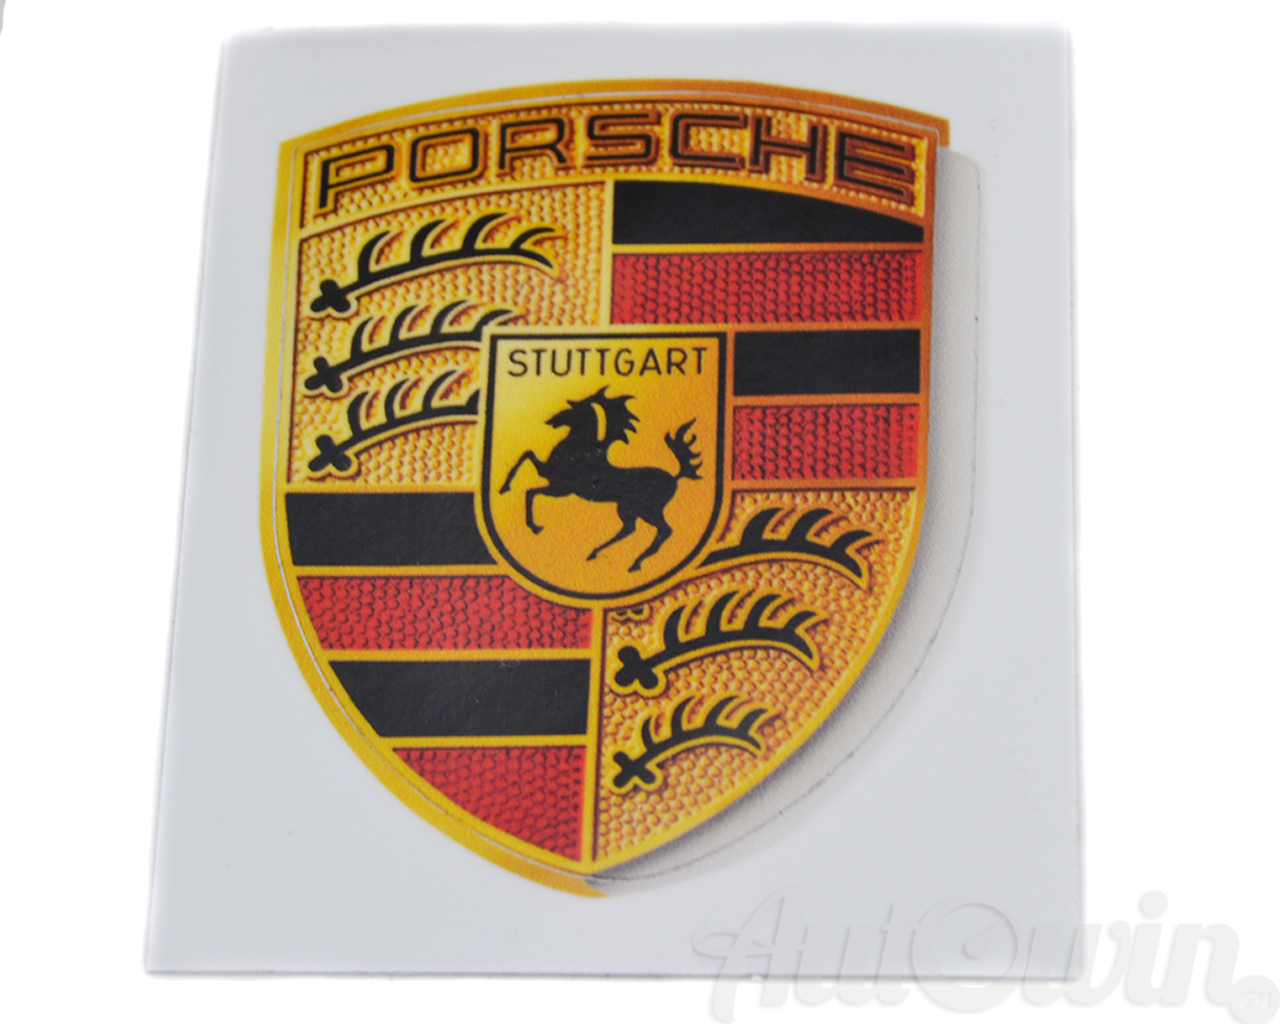 Details about brand new porsche sticker crest logo genuine oem wap013002